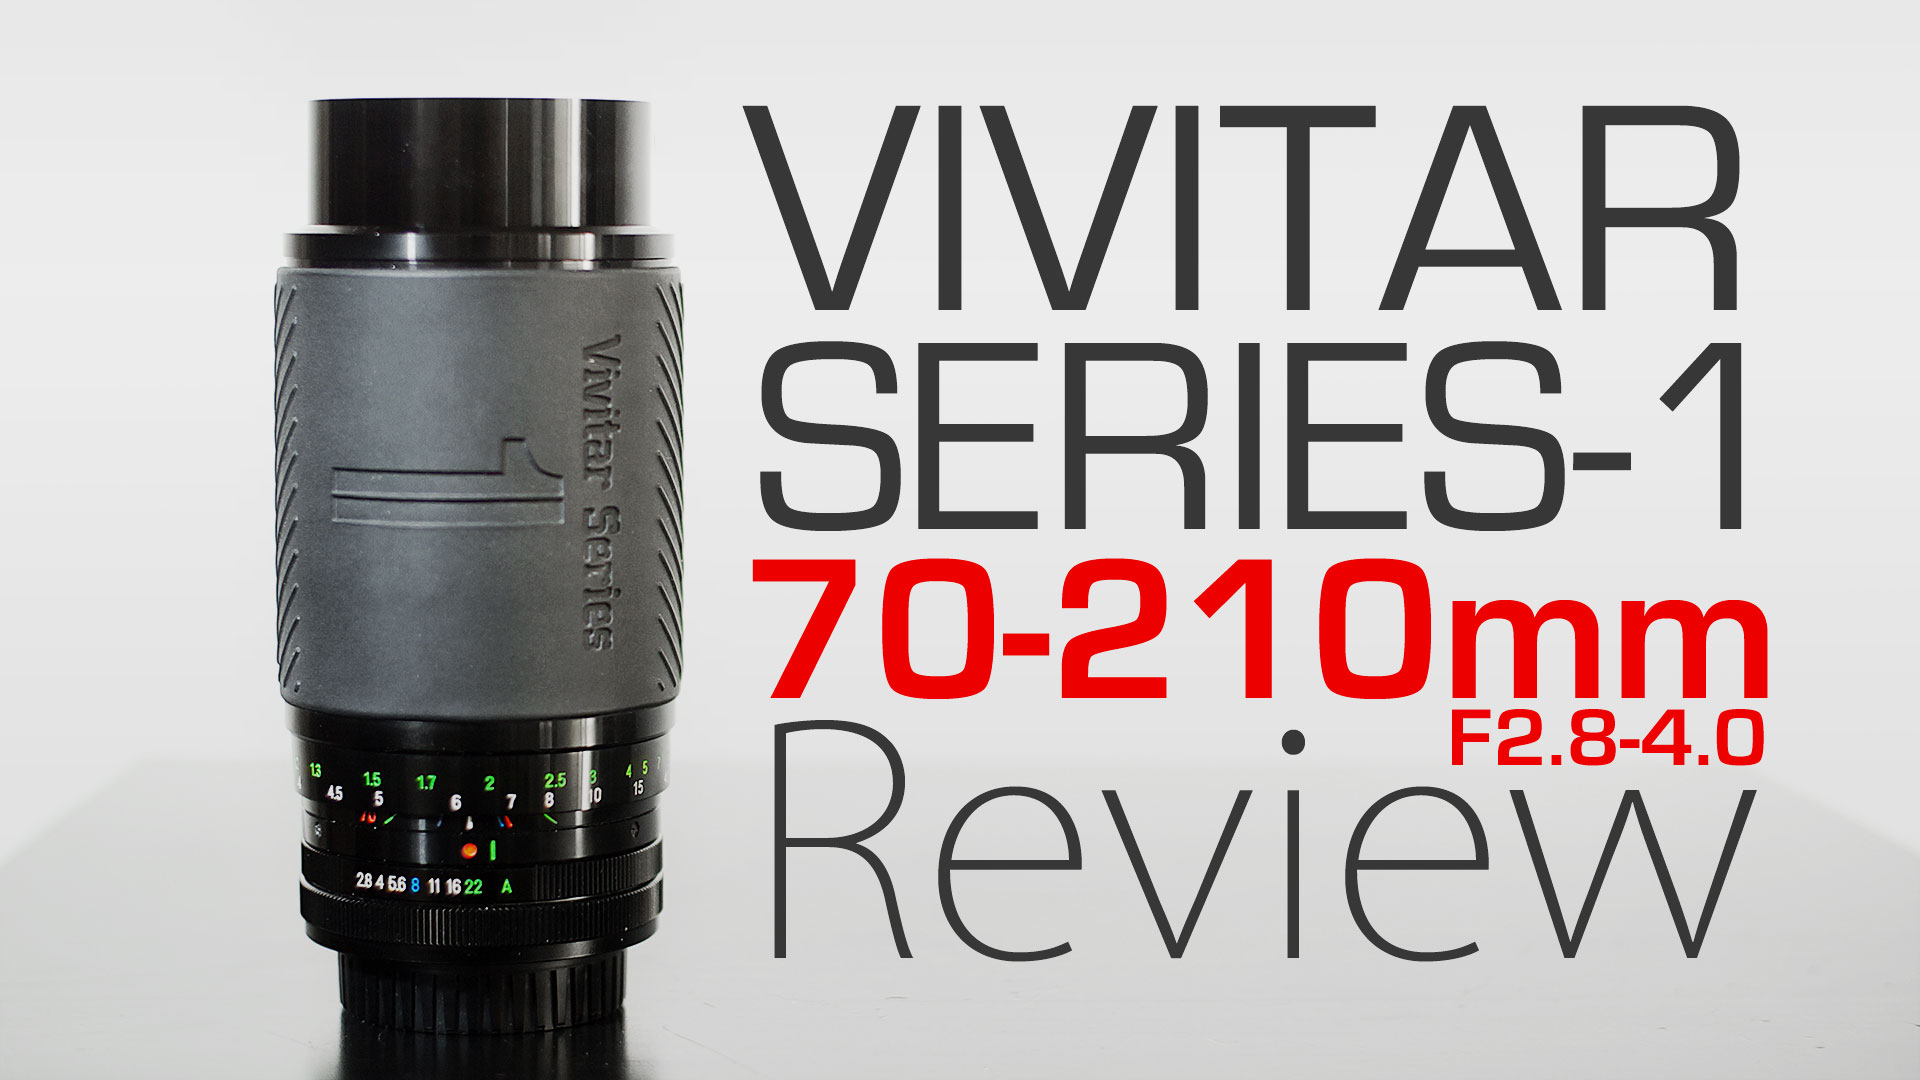 Vivitar Series-1 70-210mm F2.8-4.0 REVIEW